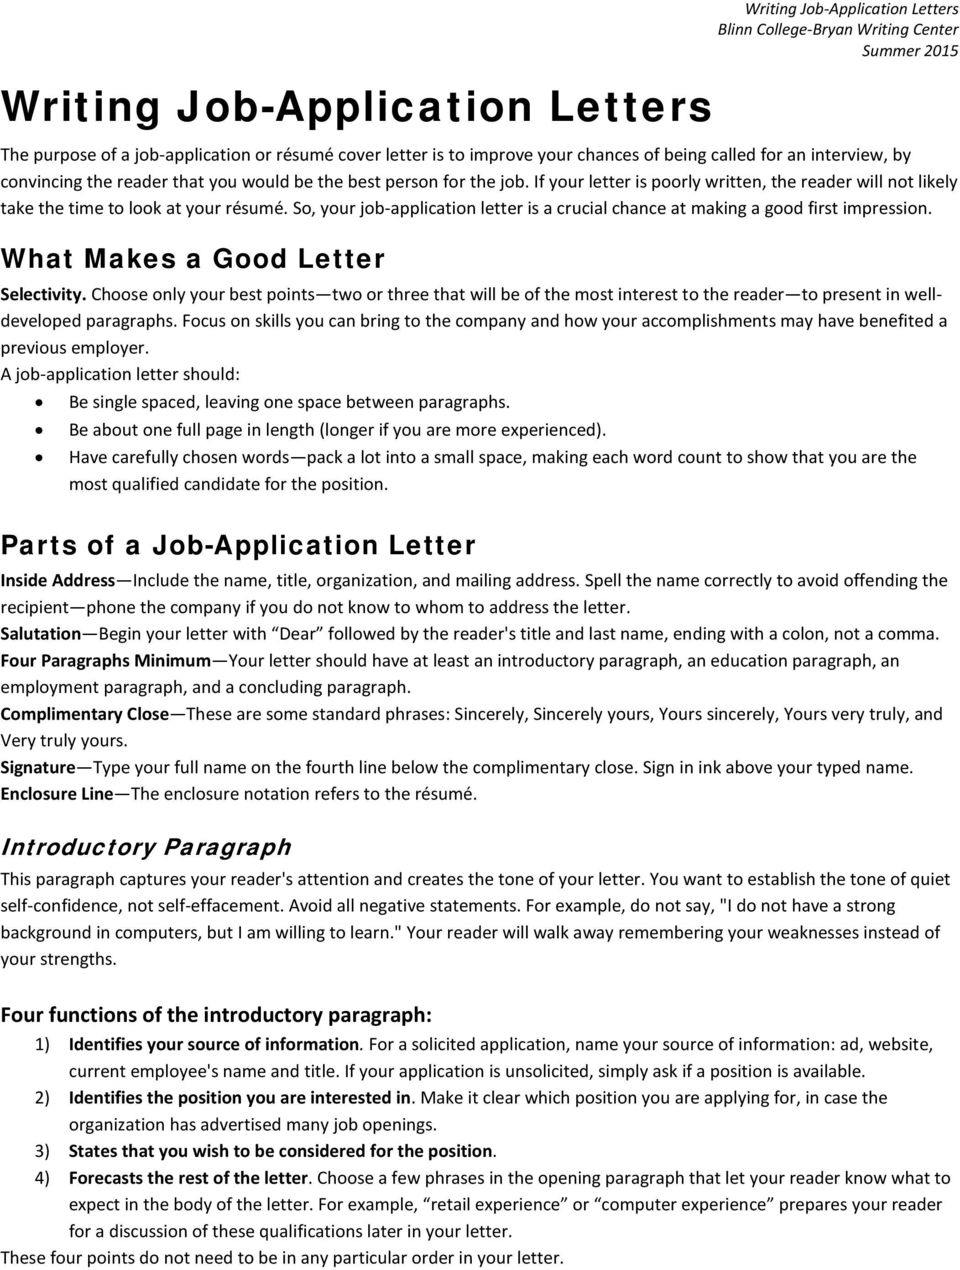 what are extracurricular activities for job application